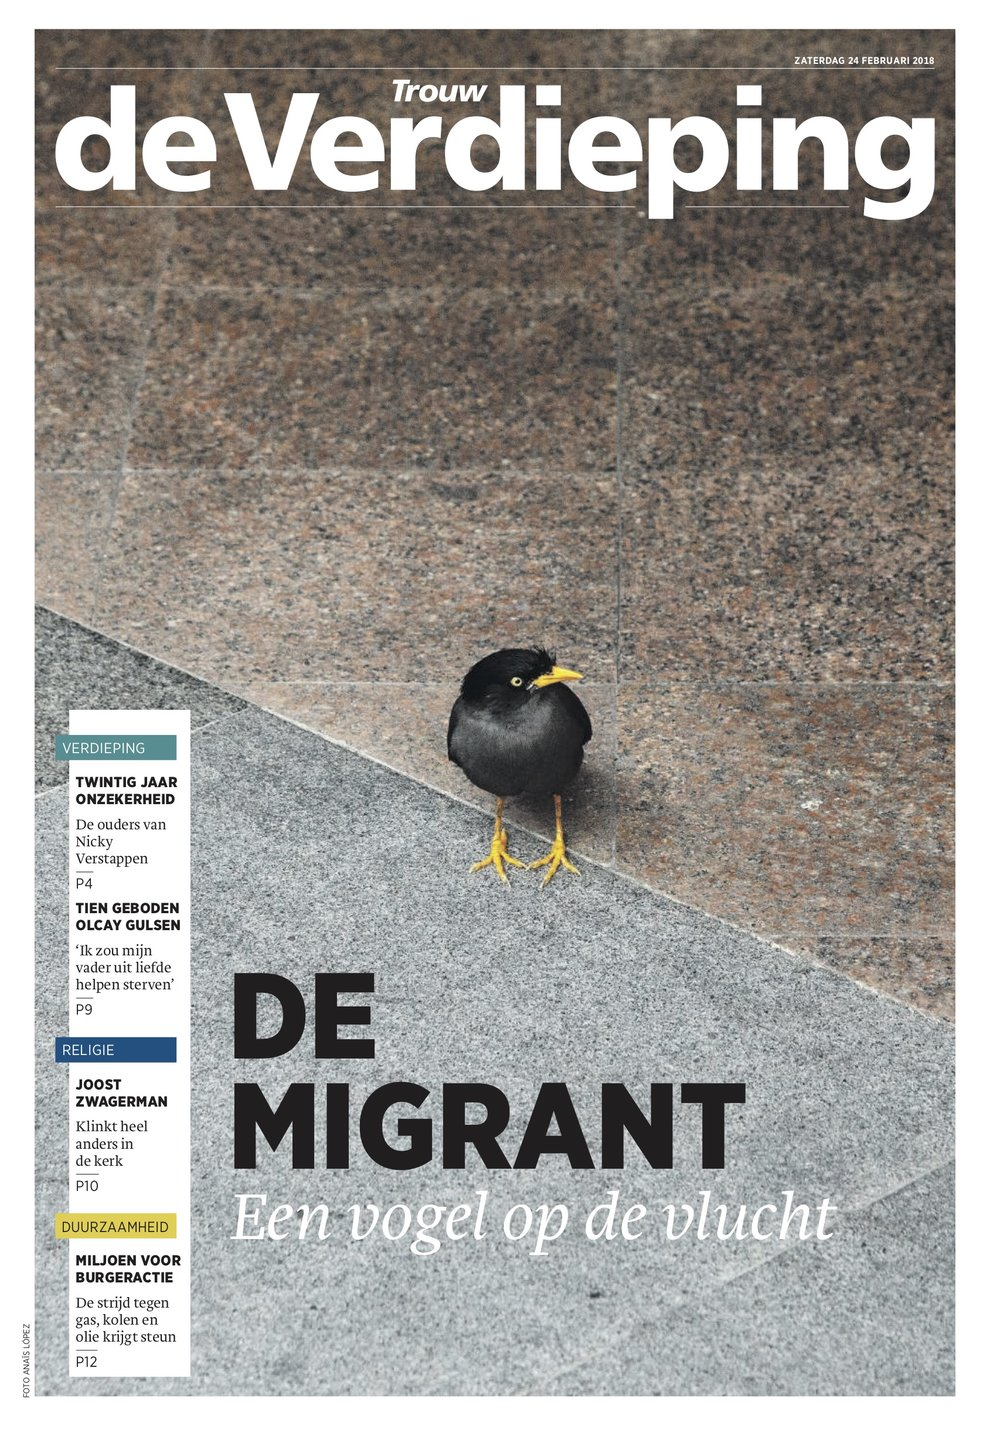 trouw migrant.jpg